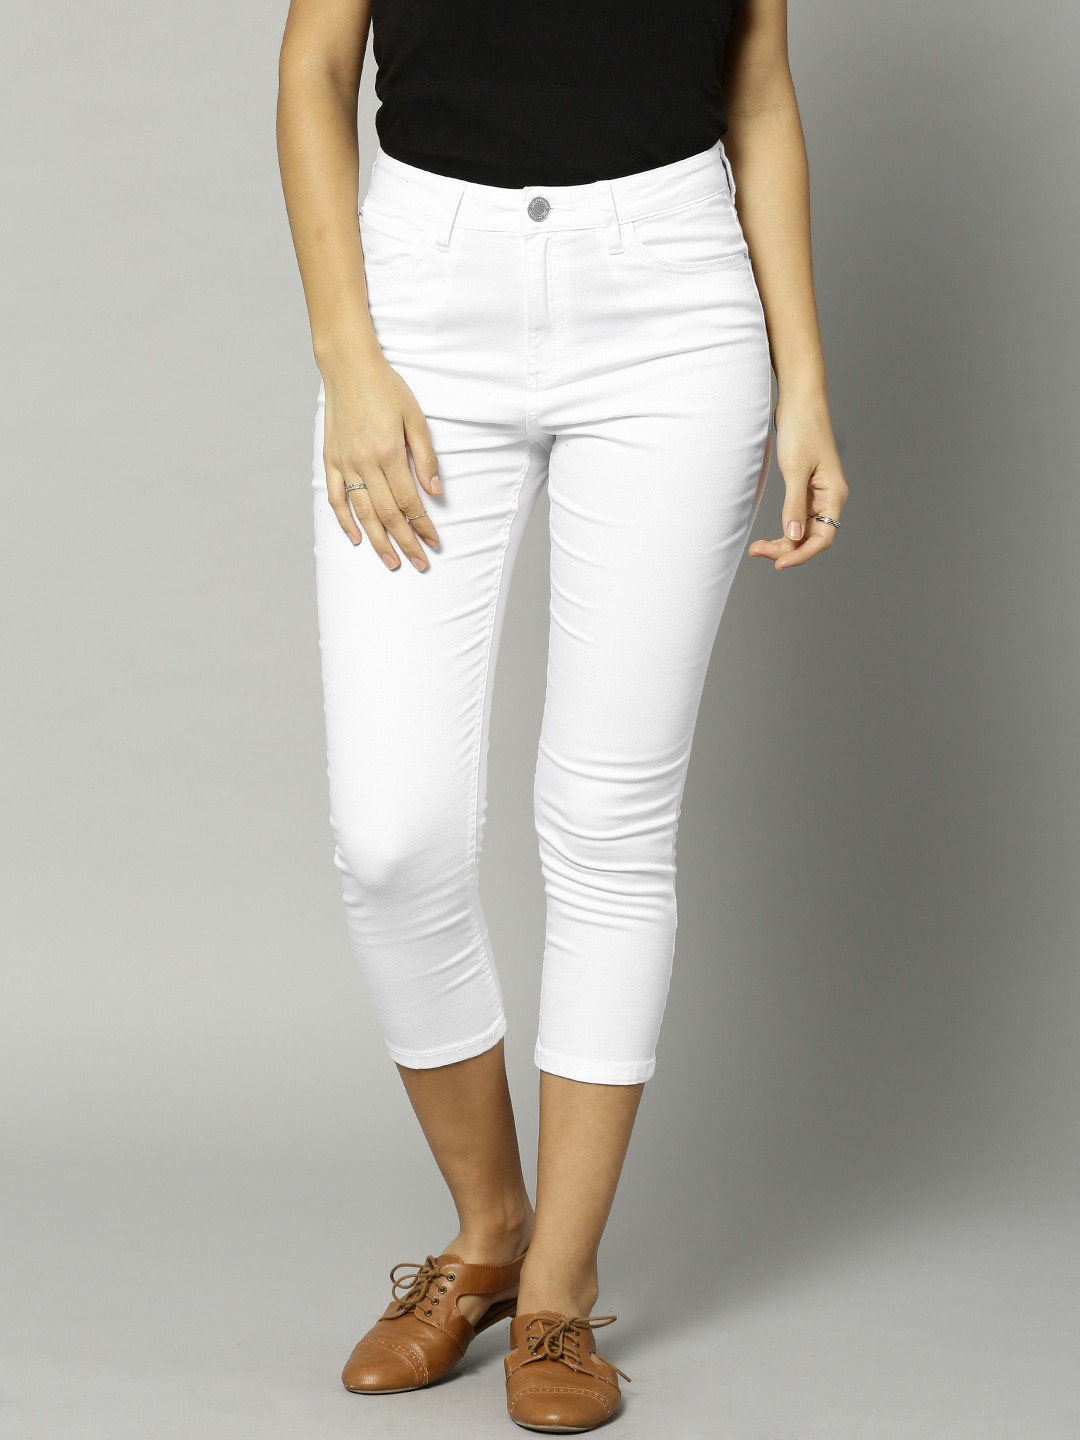 Marks & Spencer White Super Skinny Ankle-Length Jeggings